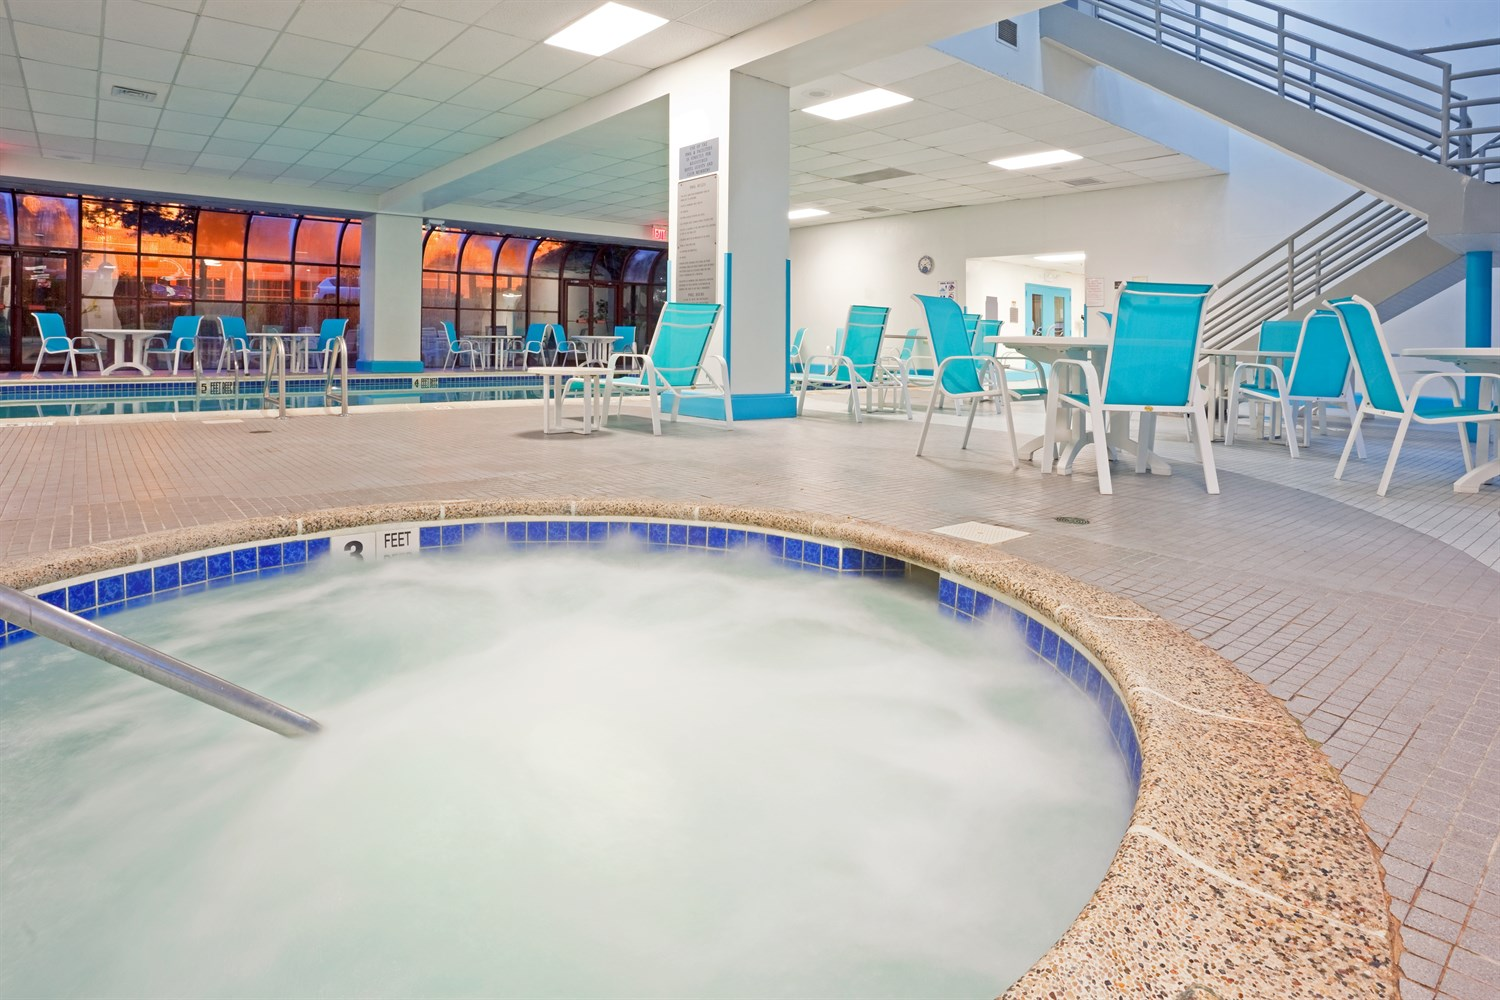 hotels with indoor pool near LGA